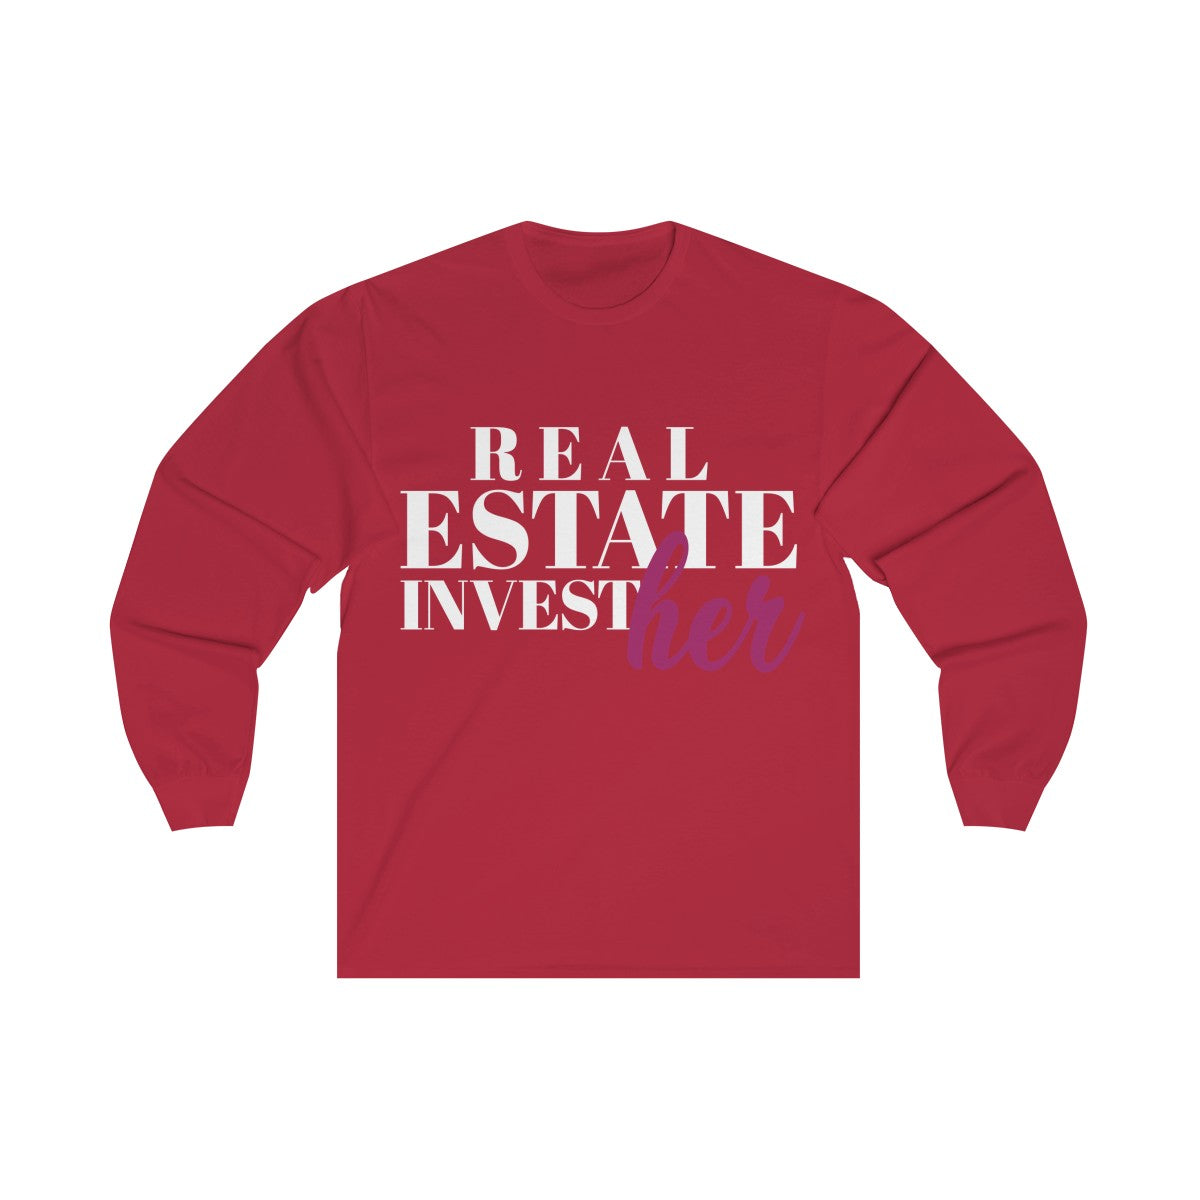 Real Estate InvestHer Long Sleeve Tee